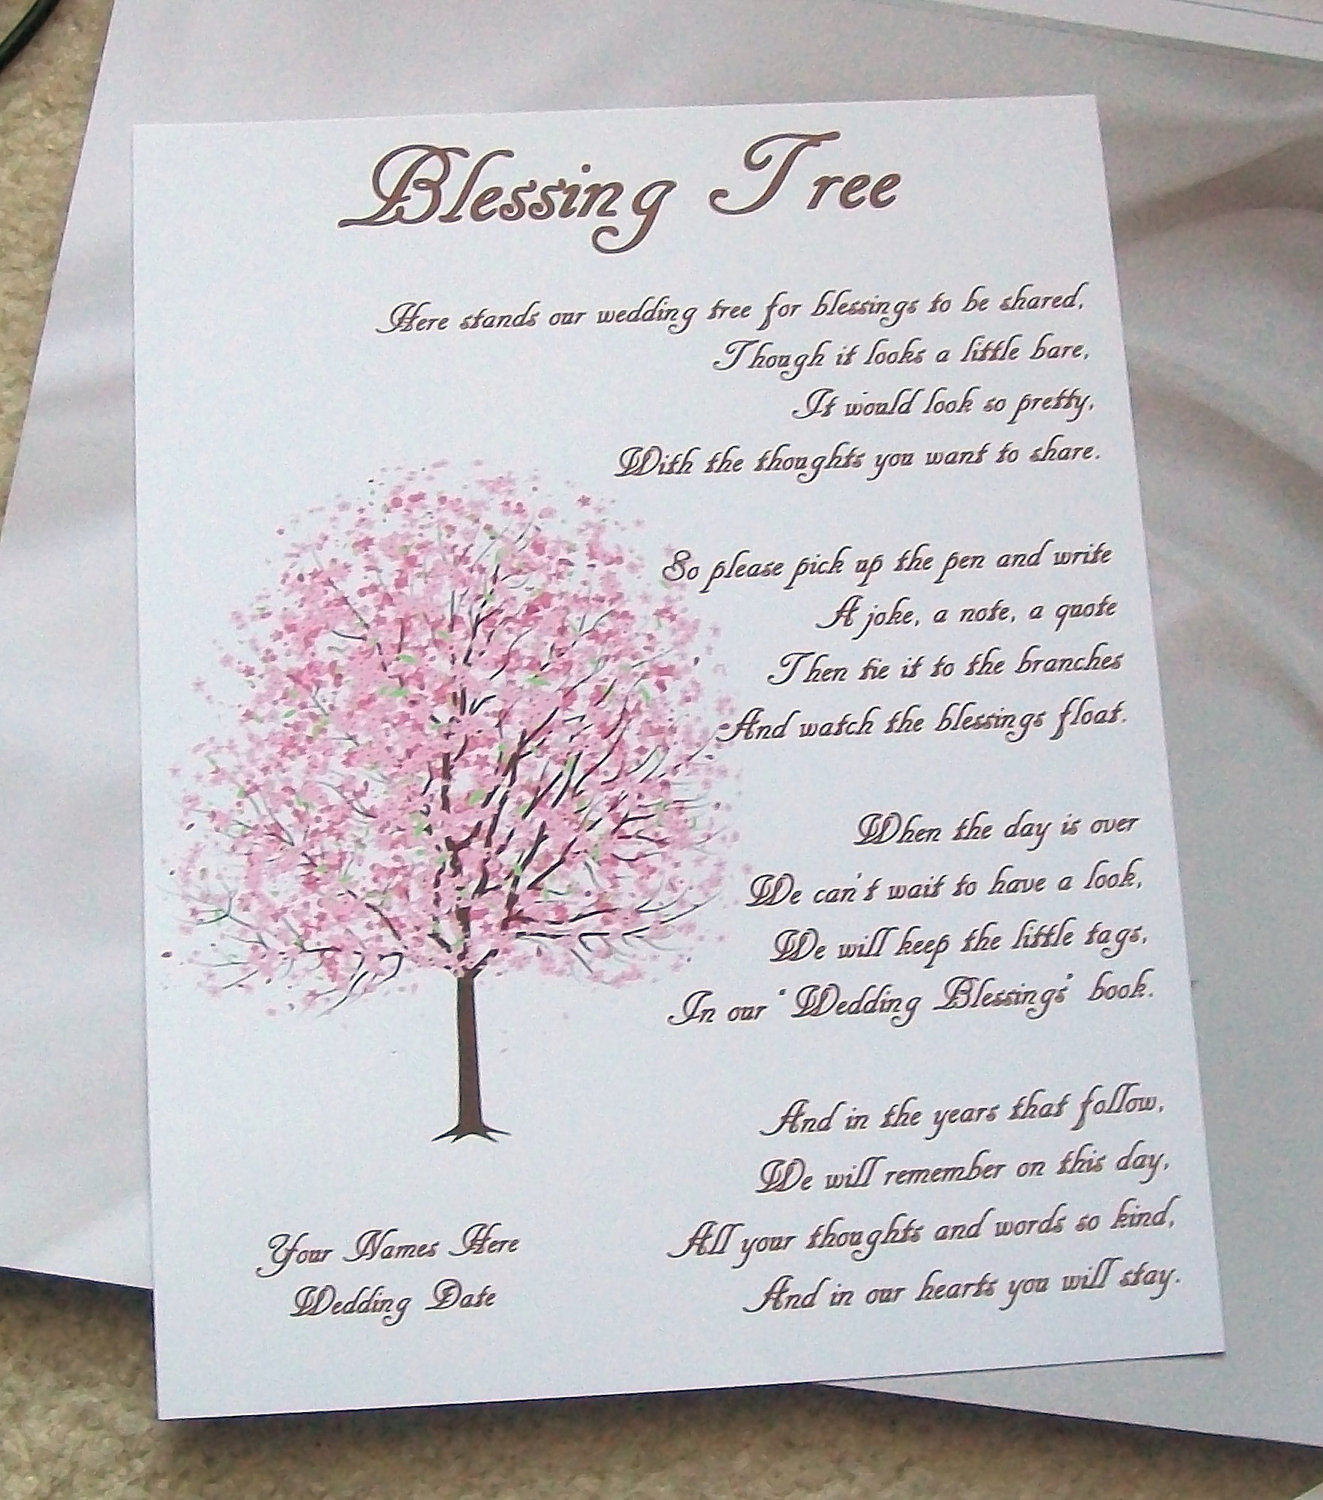 Wishing Tree Tags Instructions Sign Cherry Blossoms